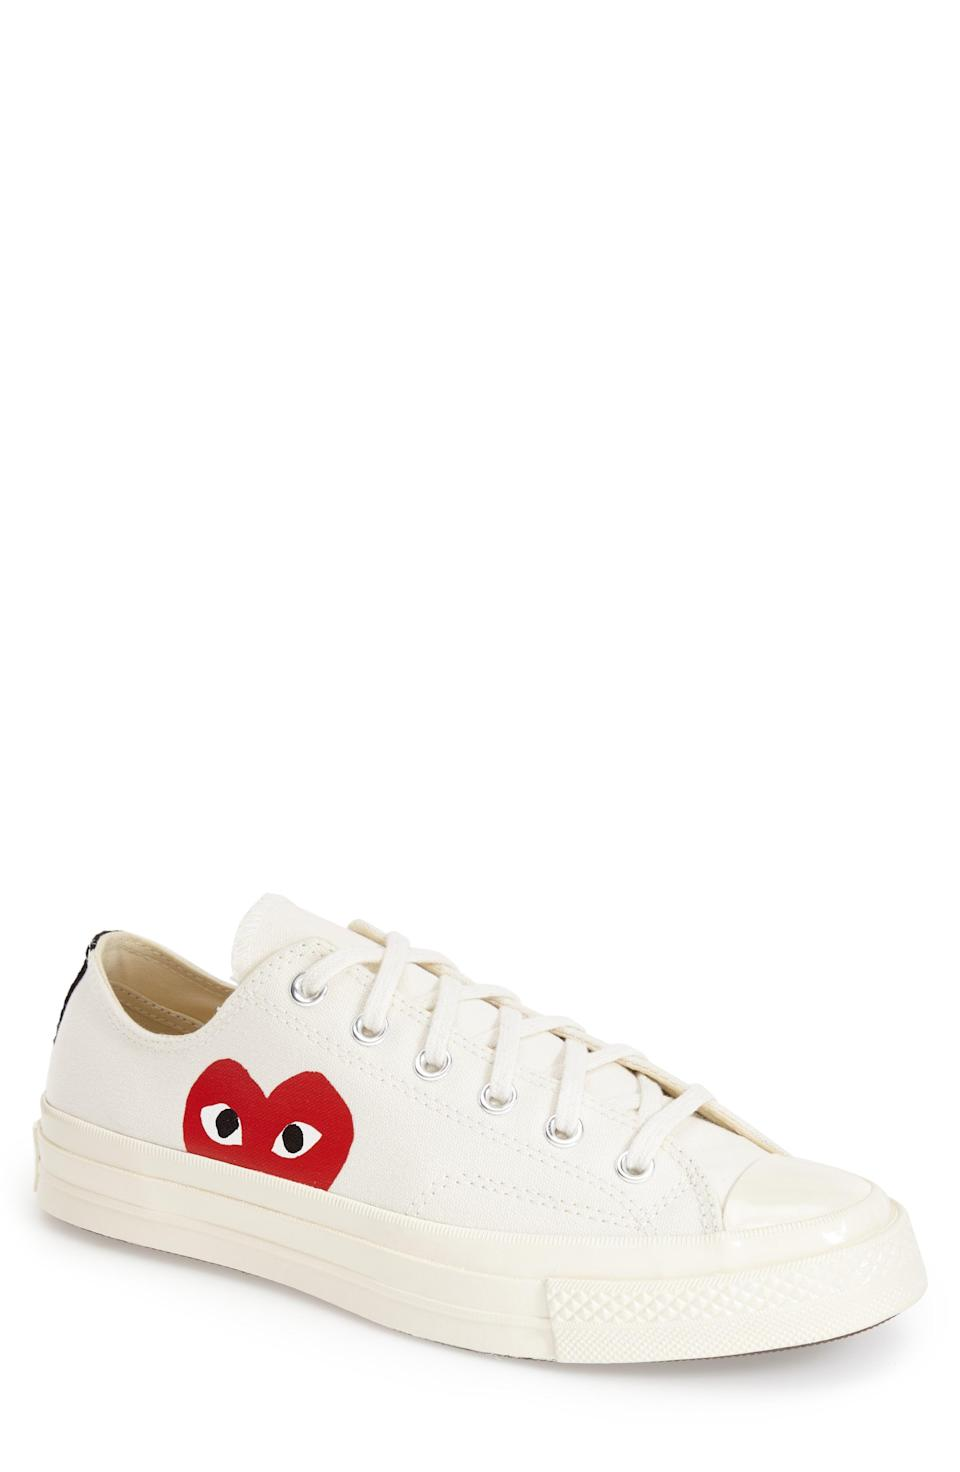 """<p><strong>COMME DES GARCONS PLAY</strong></p><p>nordstrom.com</p><p><strong>$150.00</strong></p><p><a href=""""https://go.redirectingat.com?id=74968X1596630&url=https%3A%2F%2Fwww.nordstrom.com%2Fs%2Fcomme-des-garcons-play-x-converse-chuck-taylor-hidden-heart-low-top-sneaker-unisex%2F4650436&sref=https%3A%2F%2Fwww.womenshealthmag.com%2Ffitness%2Fg36063460%2Fbest-black-sneakers%2F"""" rel=""""nofollow noopener"""" target=""""_blank"""" data-ylk=""""slk:Shop Now"""" class=""""link rapid-noclick-resp"""">Shop Now</a></p><p>From fashion giant Commes des Garçons, this unisex sneaker collab with Converse has to be one of the trendiest on this list. Beware—they're unisex, so your partner might """"borrow"""" them from you too often.</p>"""